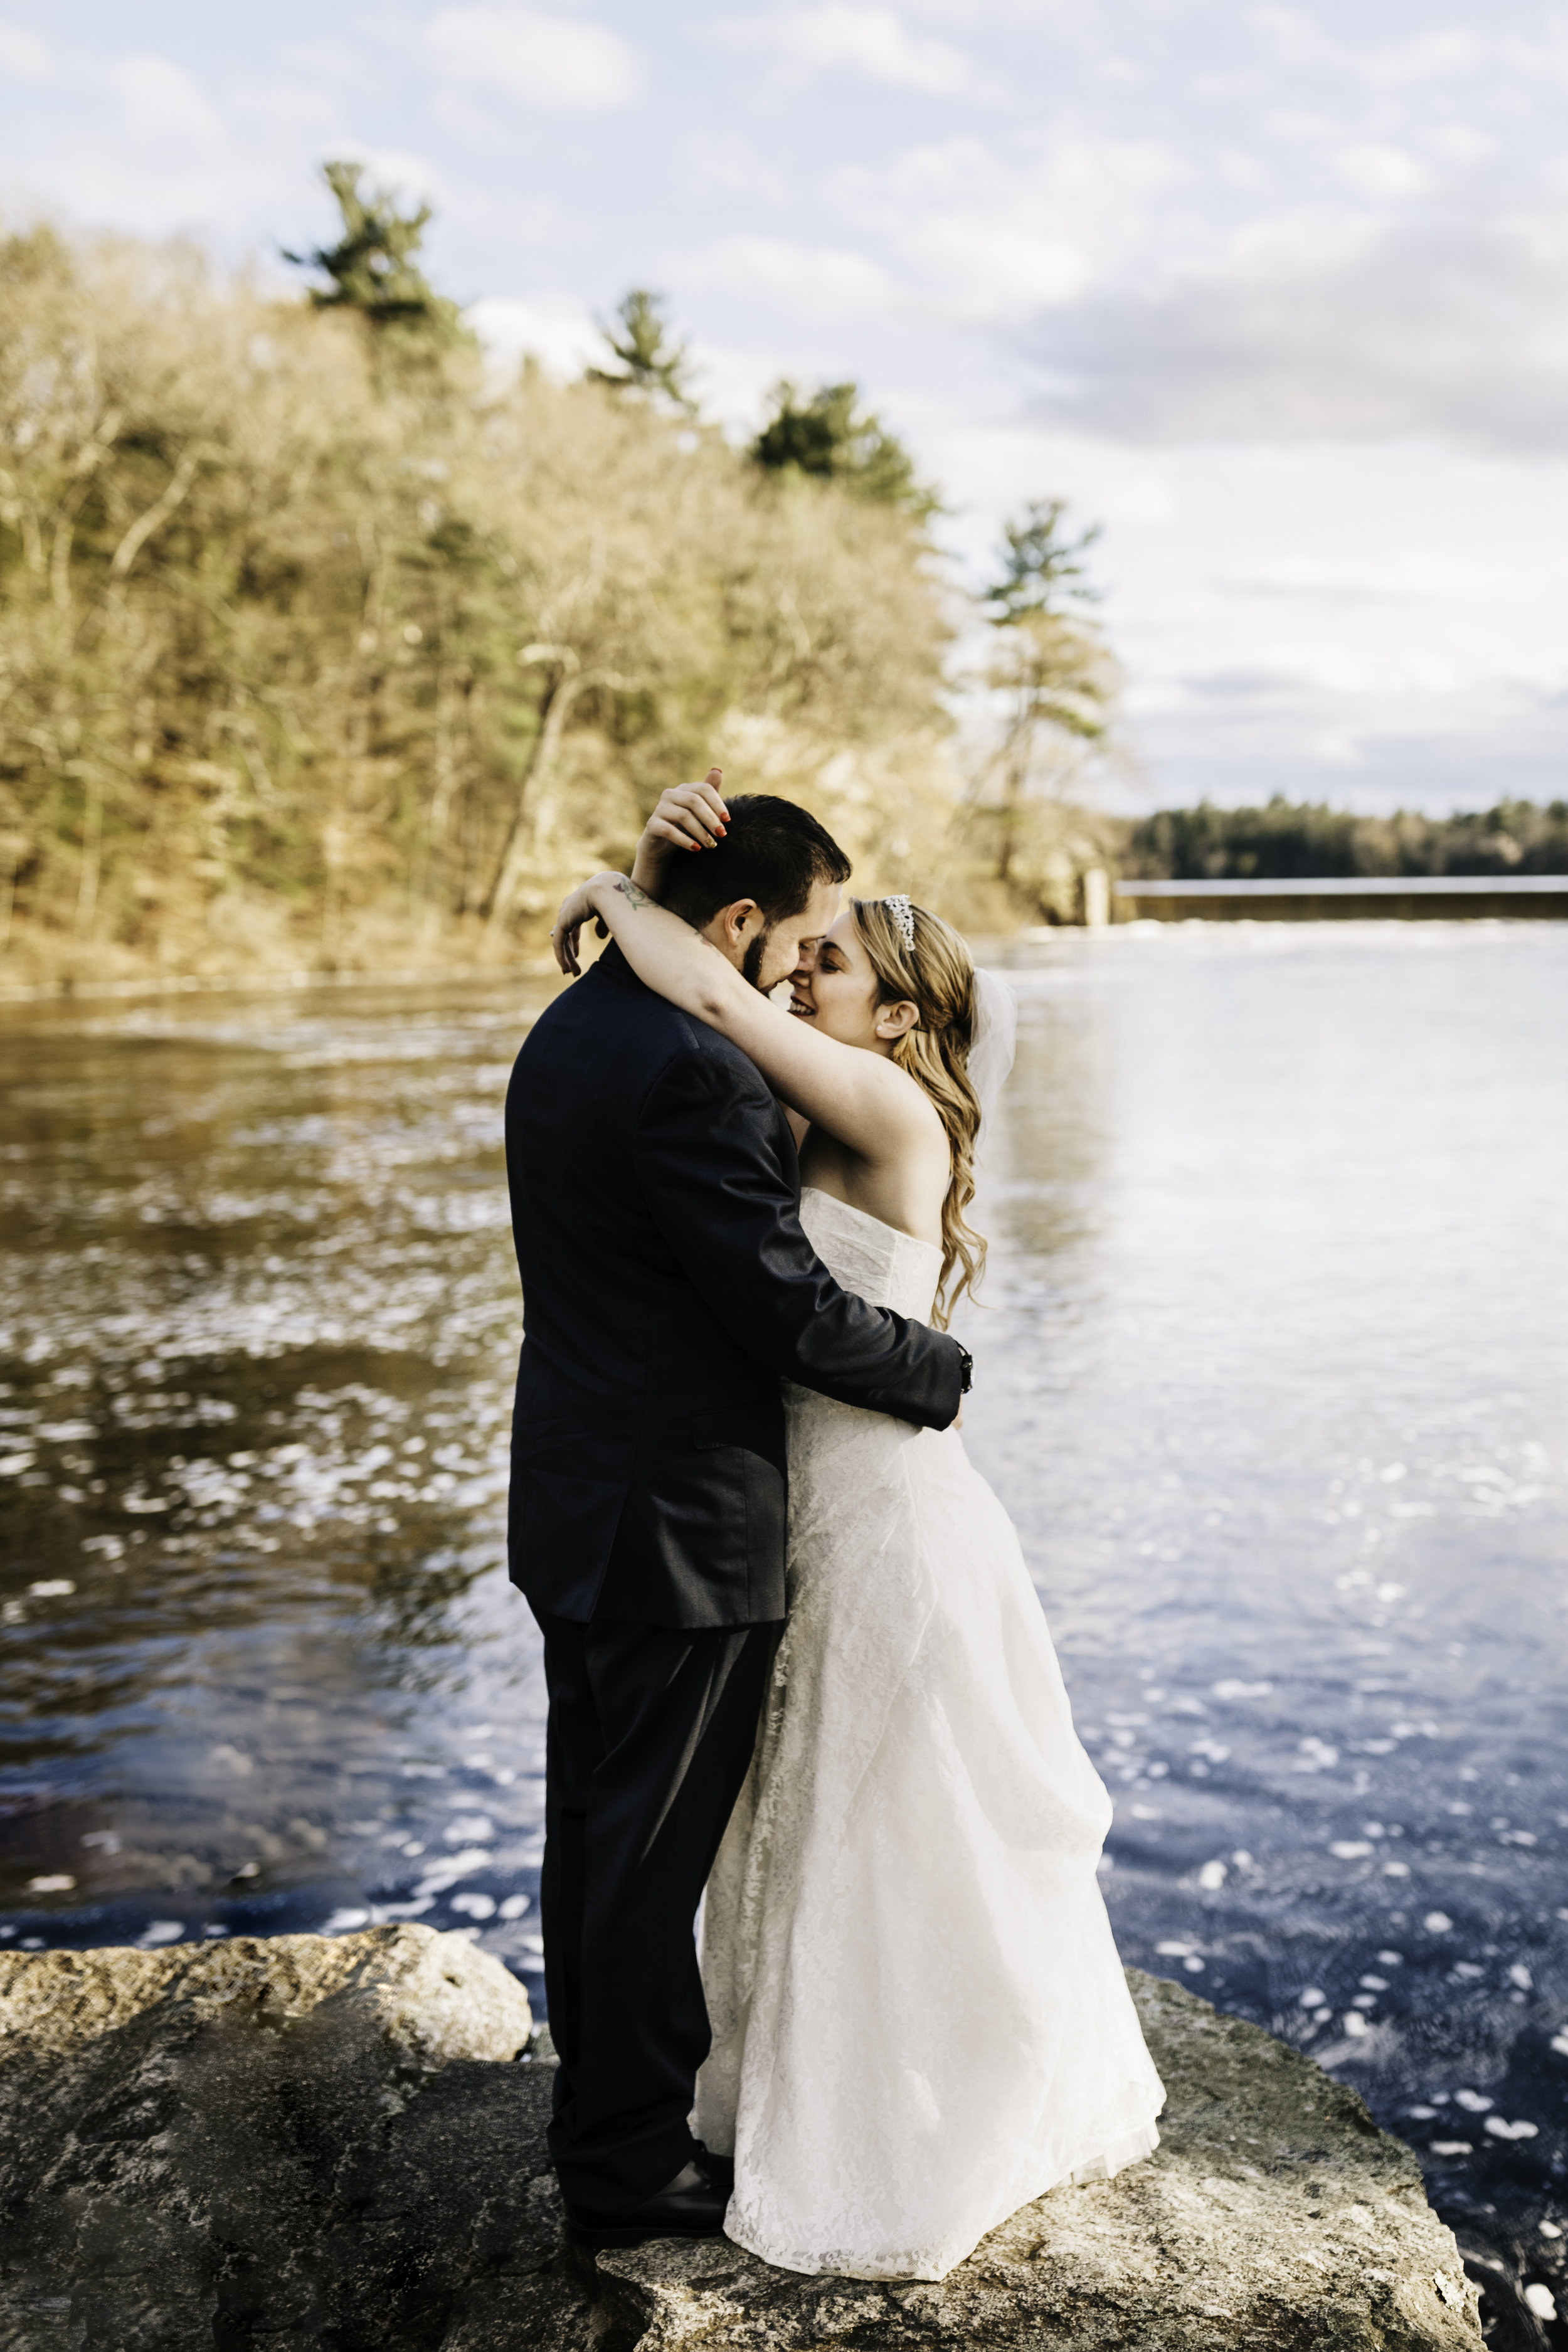 Bride and groom embracing at waterfront